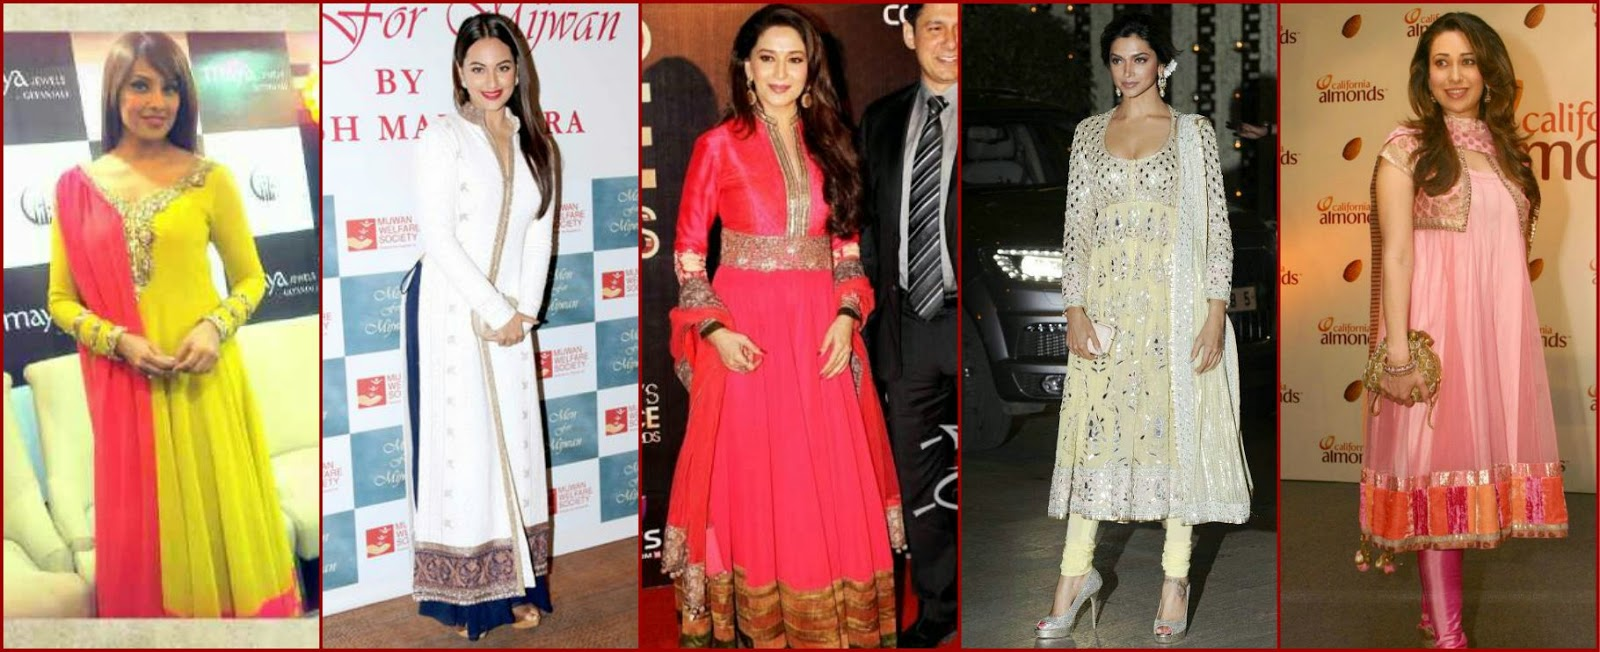 Bollywood actresses in manish malhotra, bipasah in manish malhotra, sonakshi in manish malhotra salwar suit, madhuri in manish malhotra, deepika in manish malhotra, karishma in manish malhotra salwar kameez